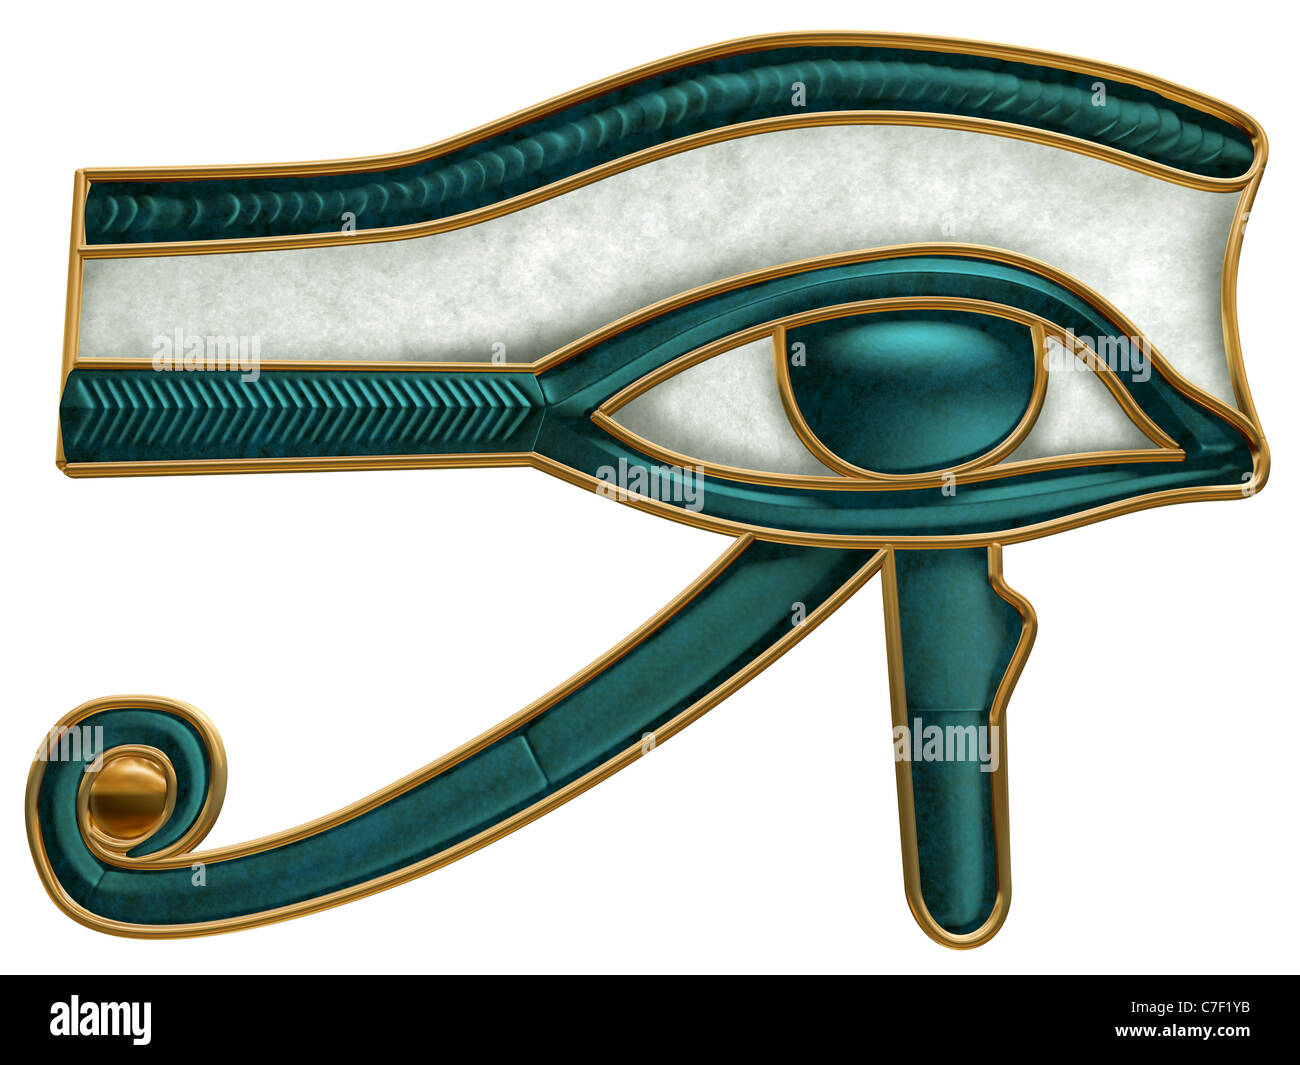 Illustration of the ancient egyptian eye of horus symbol stock illustration of the ancient egyptian eye of horus symbol biocorpaavc Images